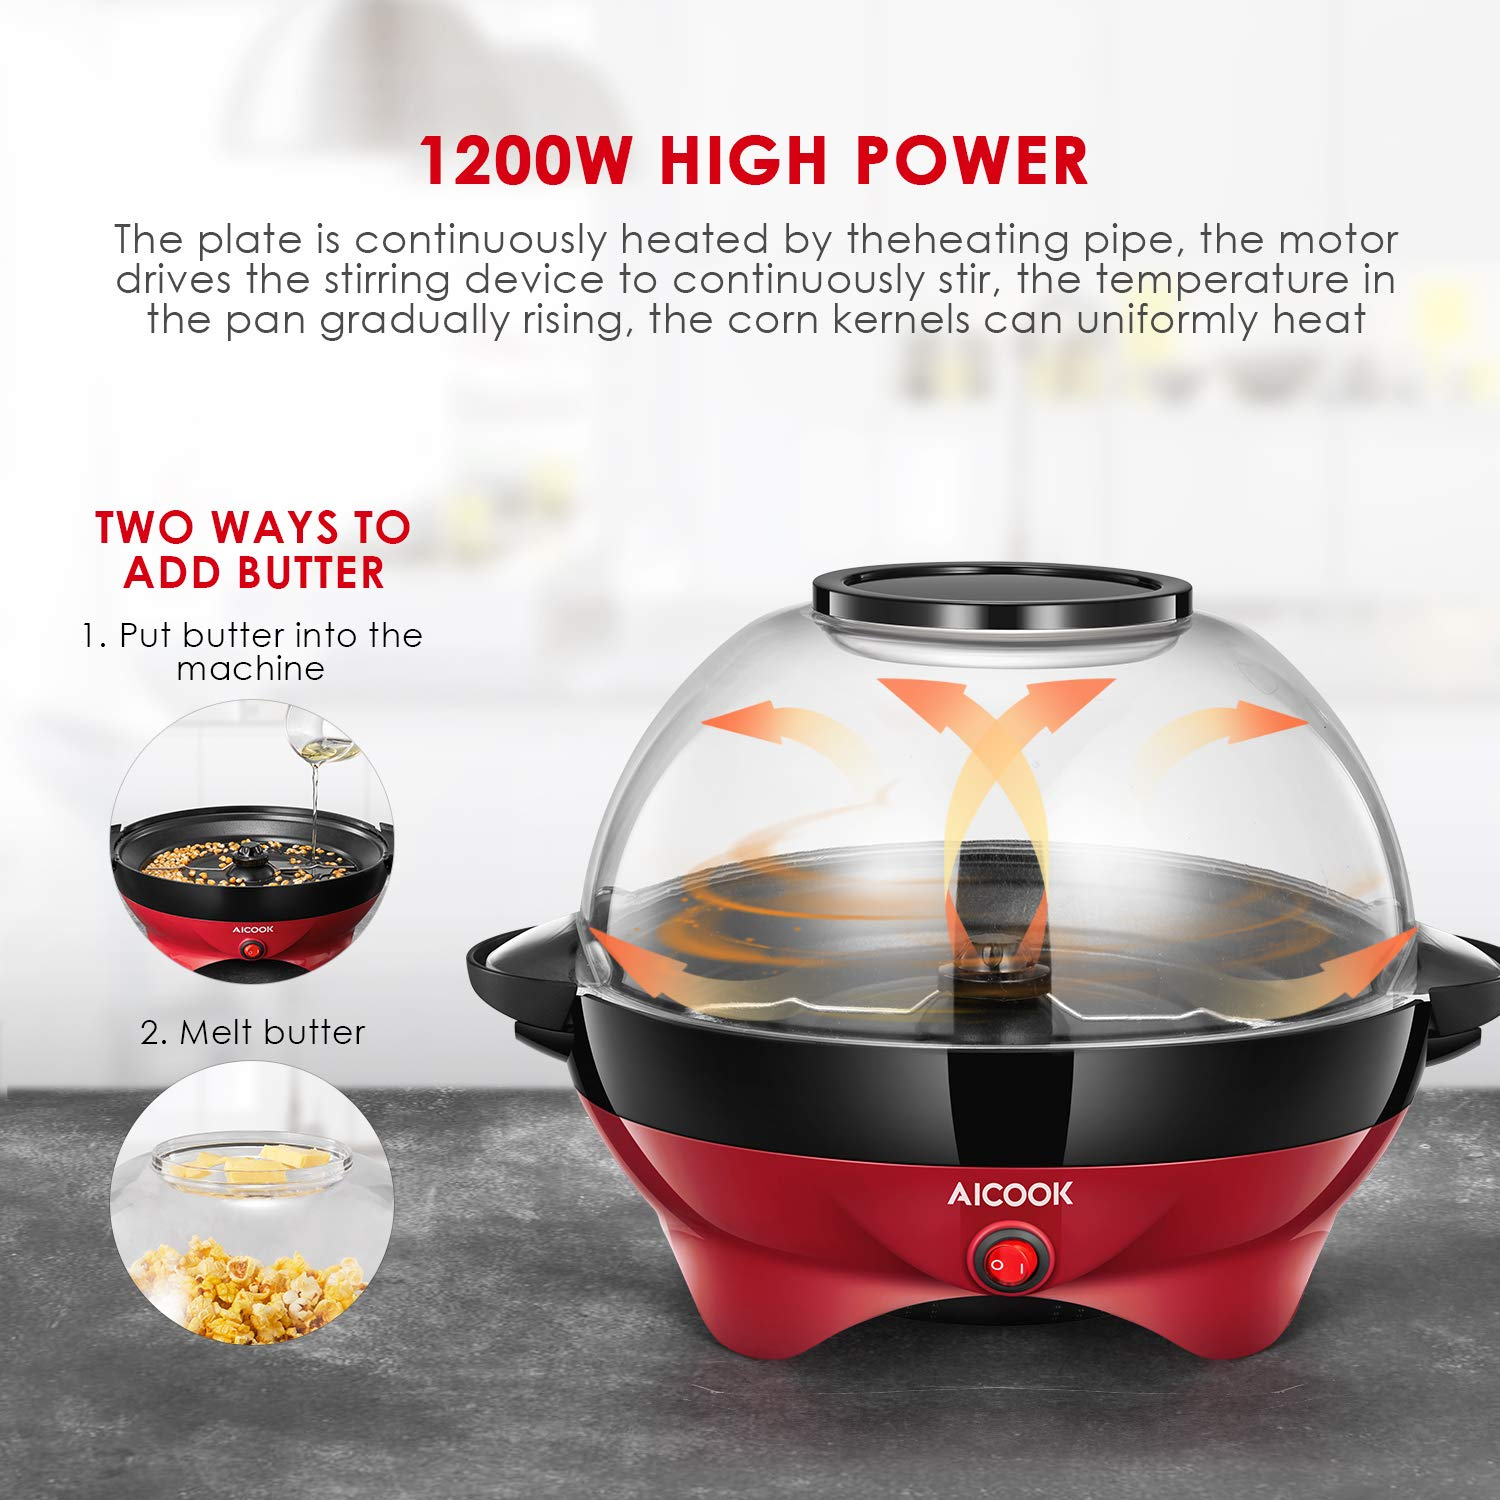 Popcorn Maker, AICOOK Electric Hot Oil Popcorn Popper Machine with Stirring Rod Offers Large Lid for Serving Bowl and Convenient Storage, 6-Quart, Red by AICOOK (Image #4)